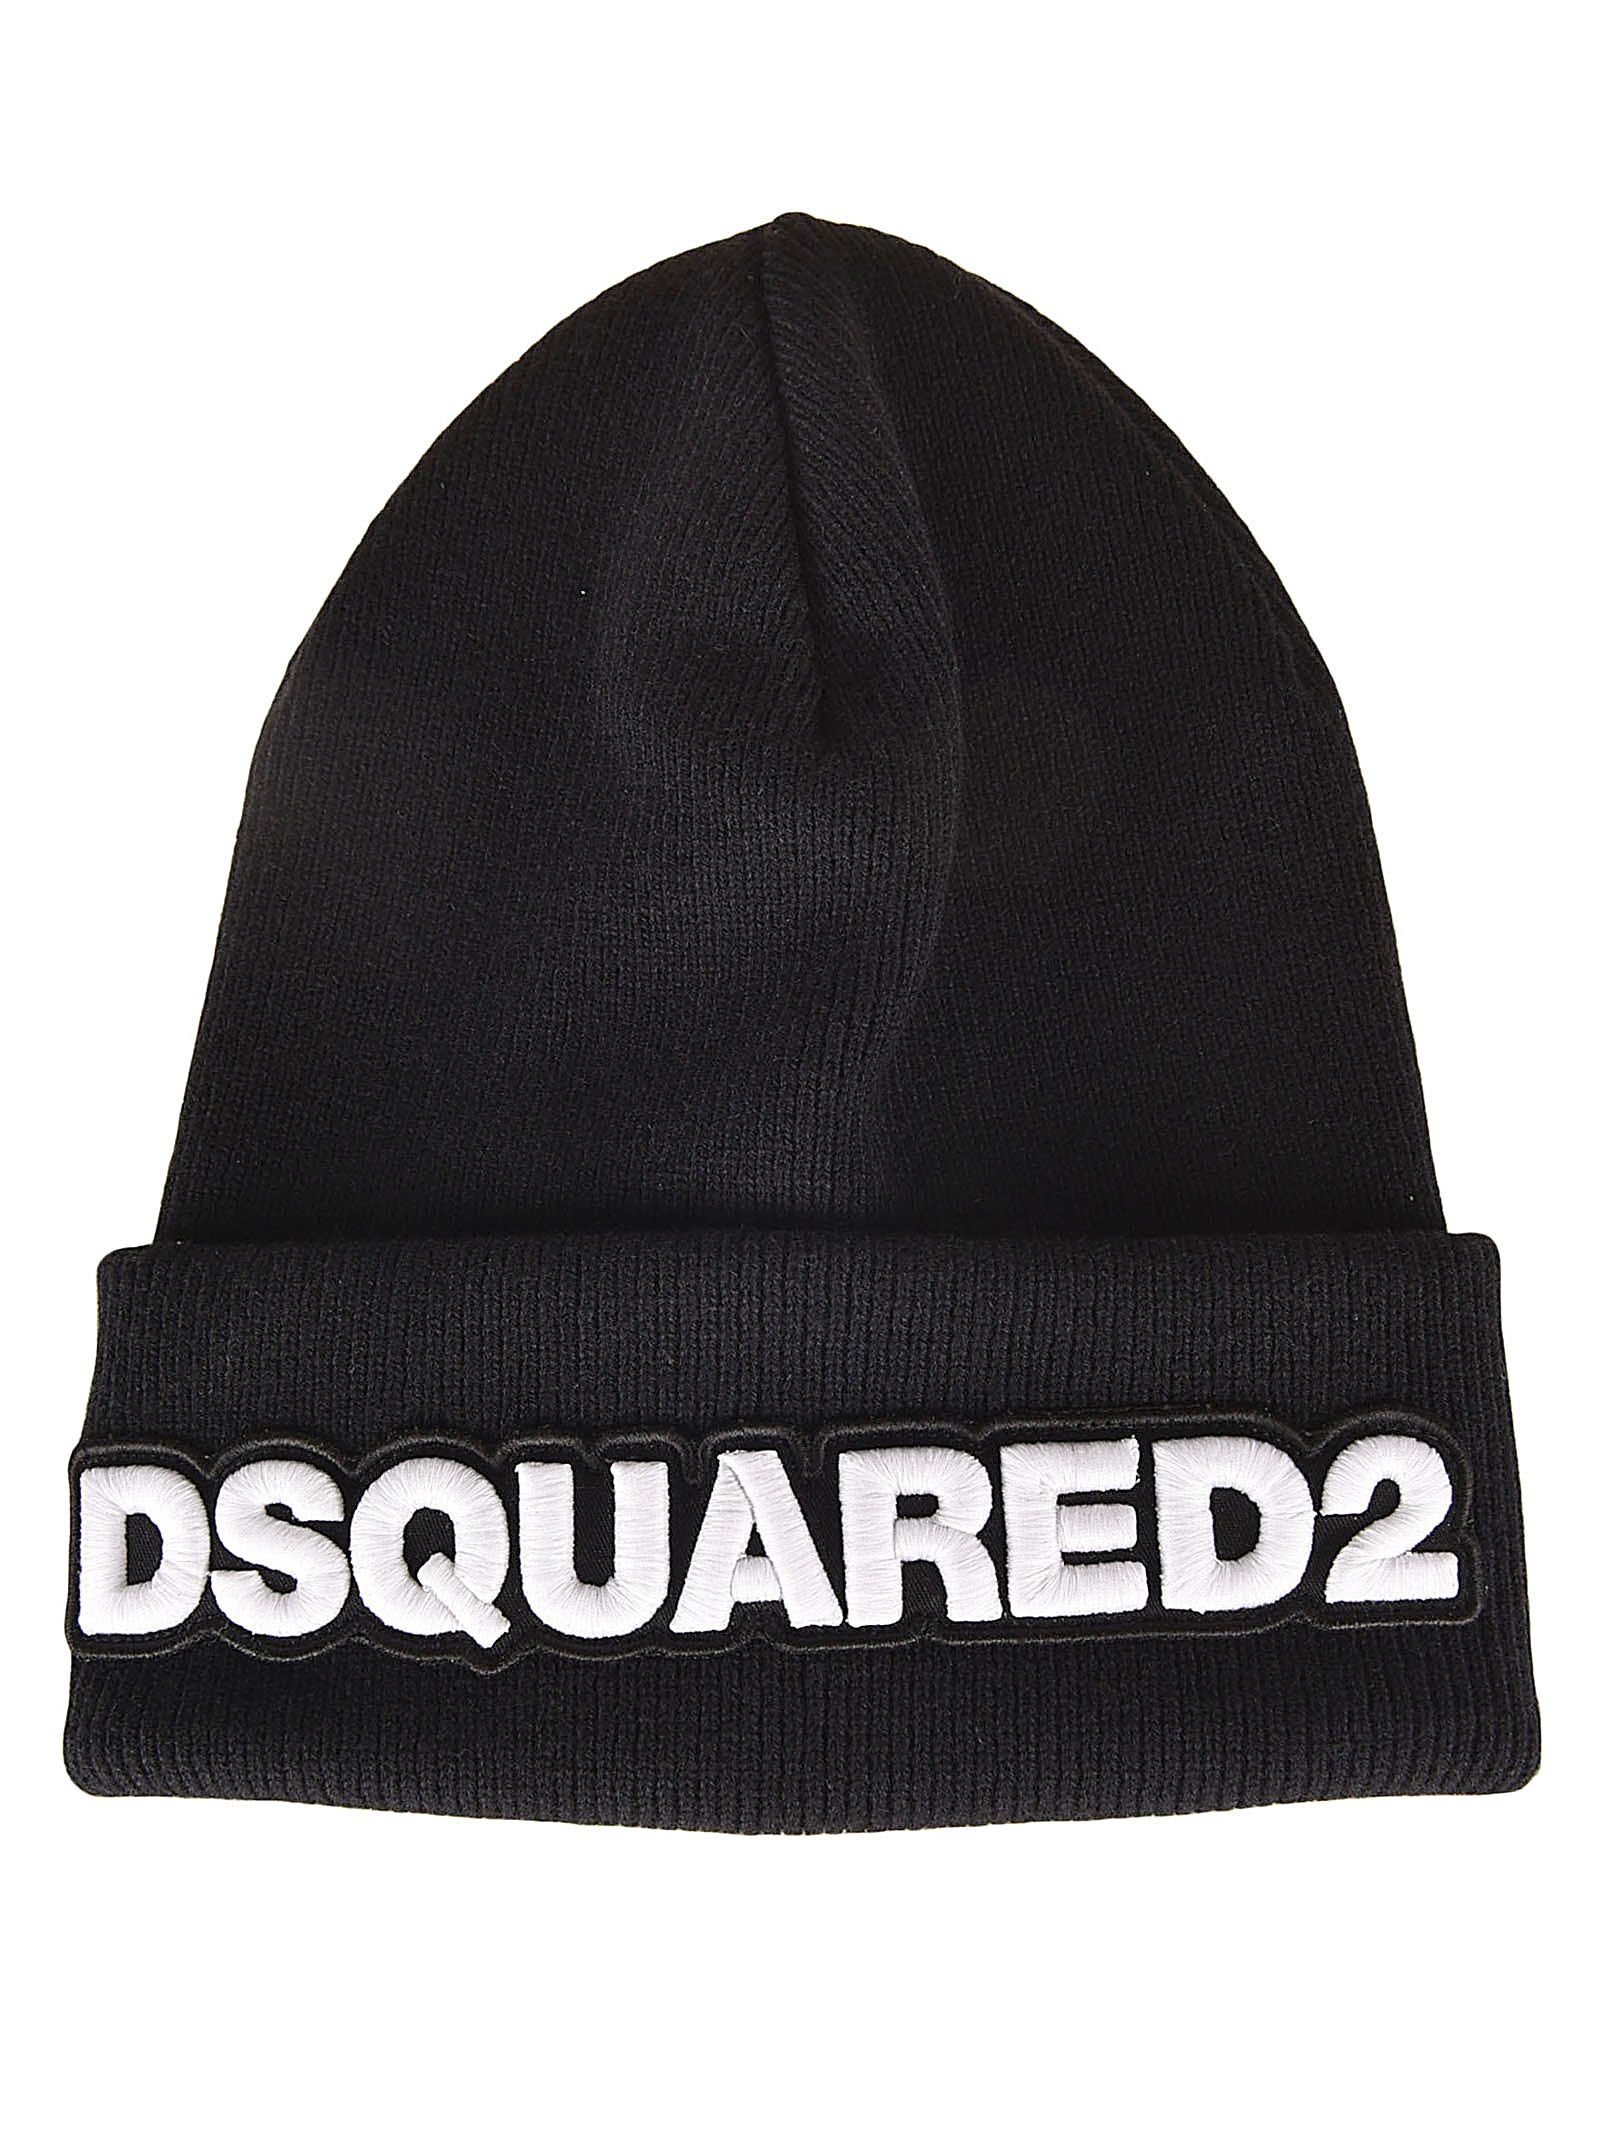 34331865d49 Dsquared2 Logo Embroidered Beanie - Black ...